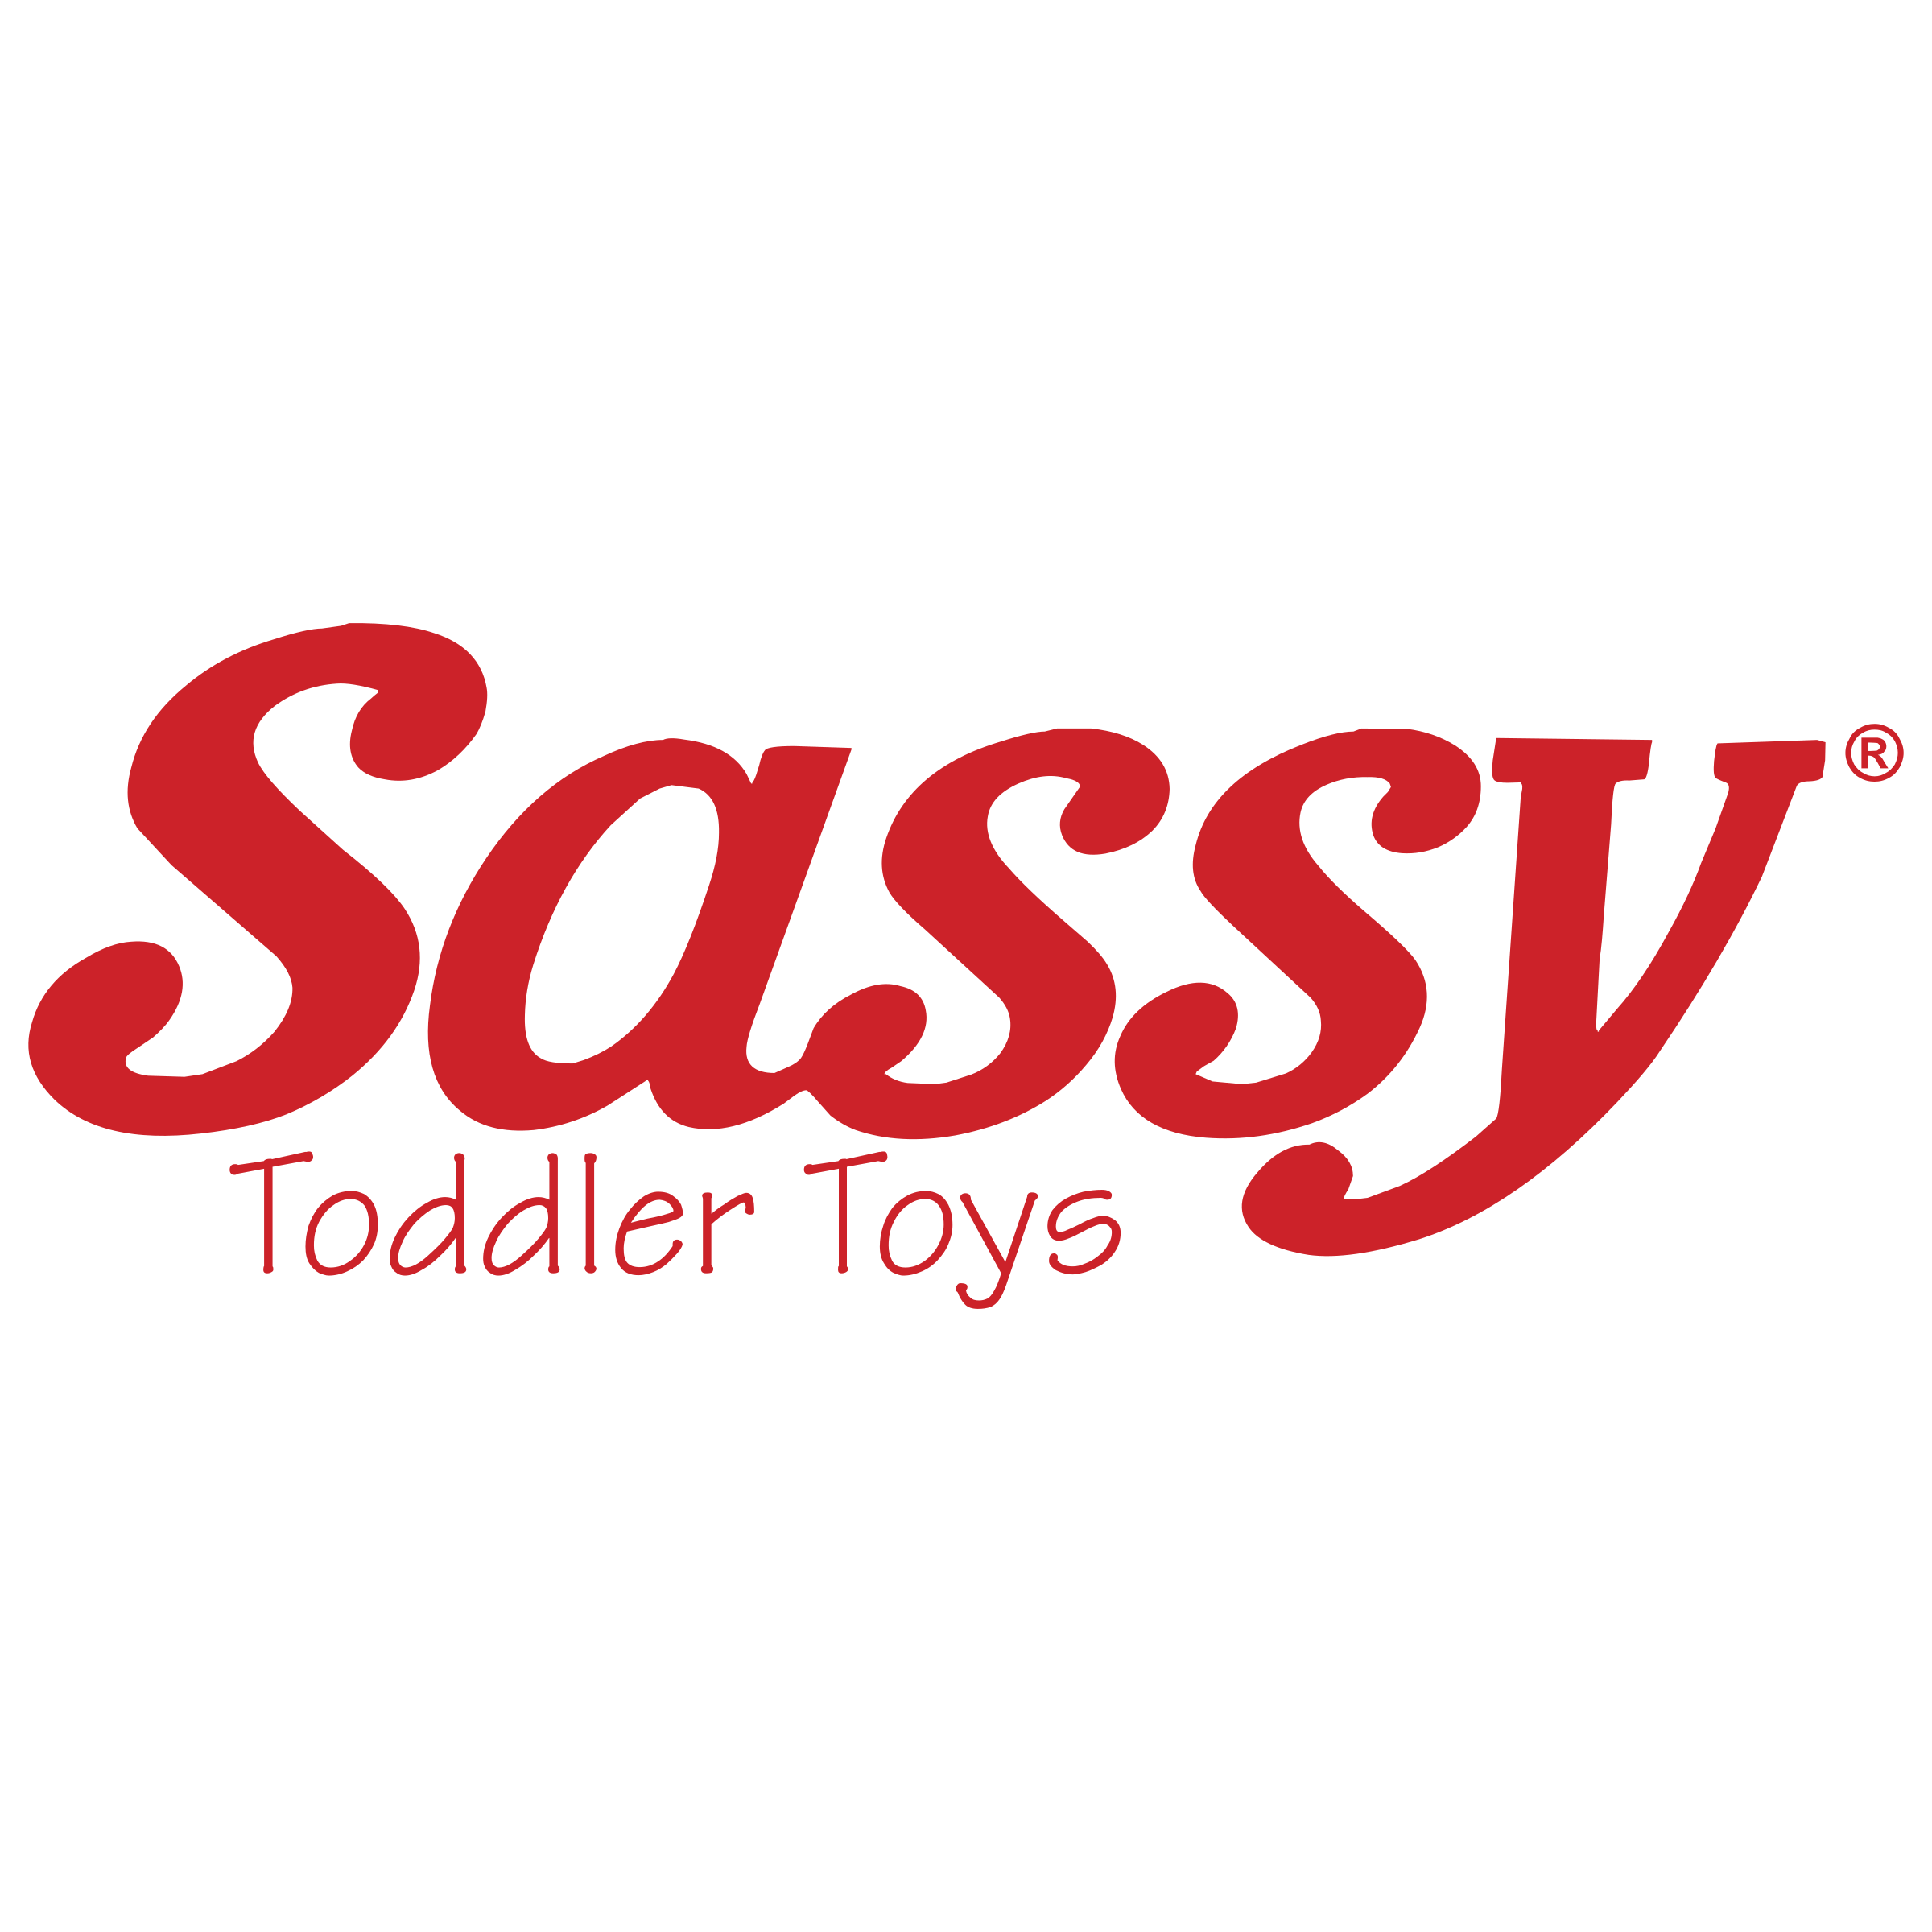 Sassy Toddler Toys Logo Png Transparent Svg Vector Freebie Supply